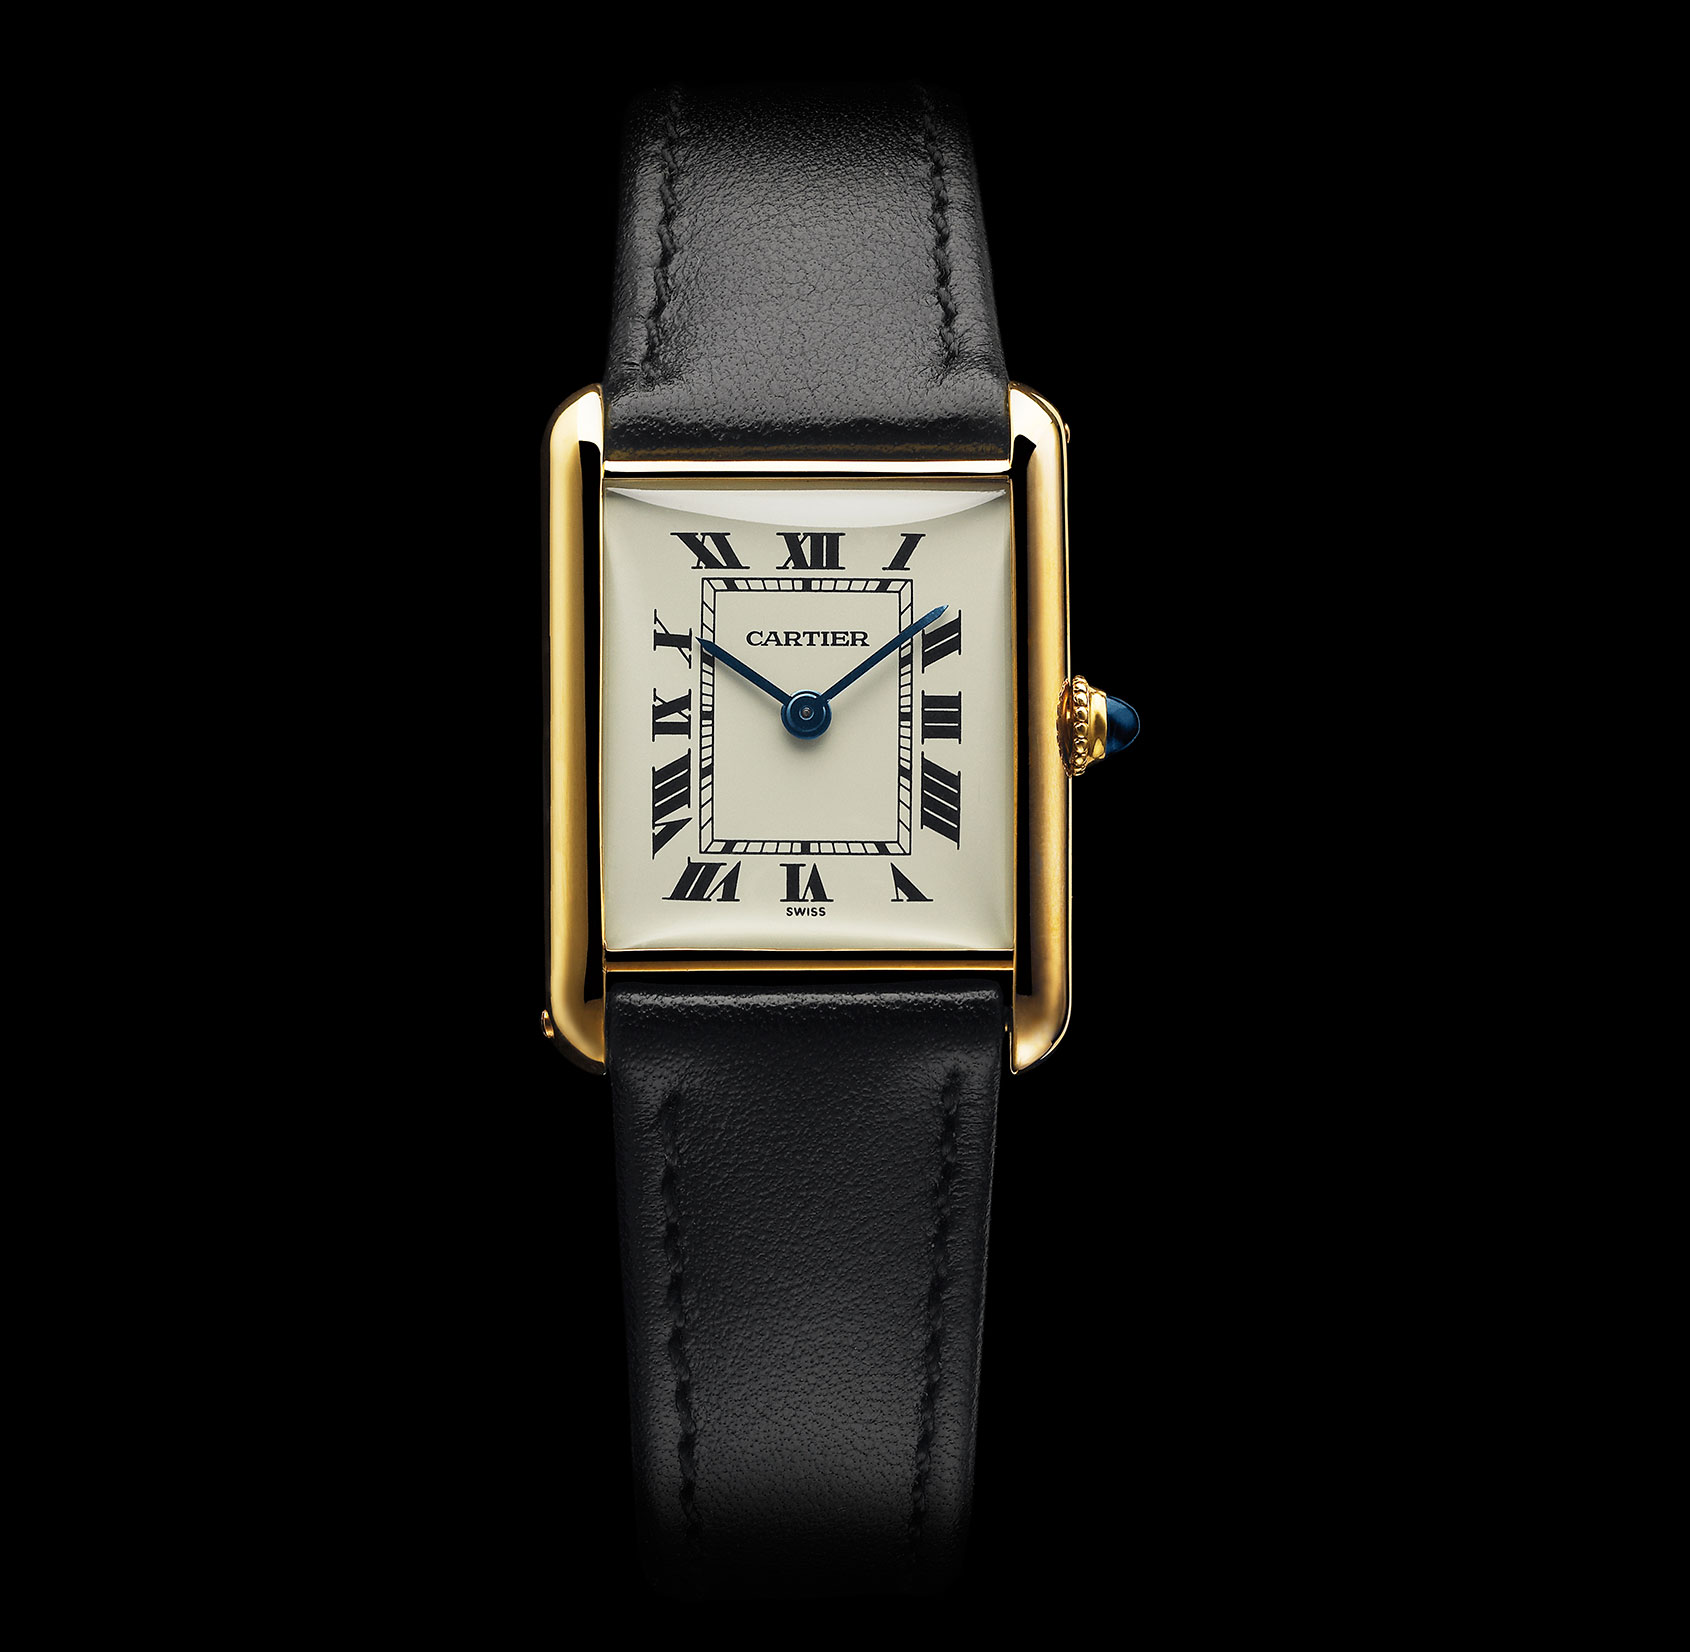 Cartier Tanks 100year History and the People Who Made It